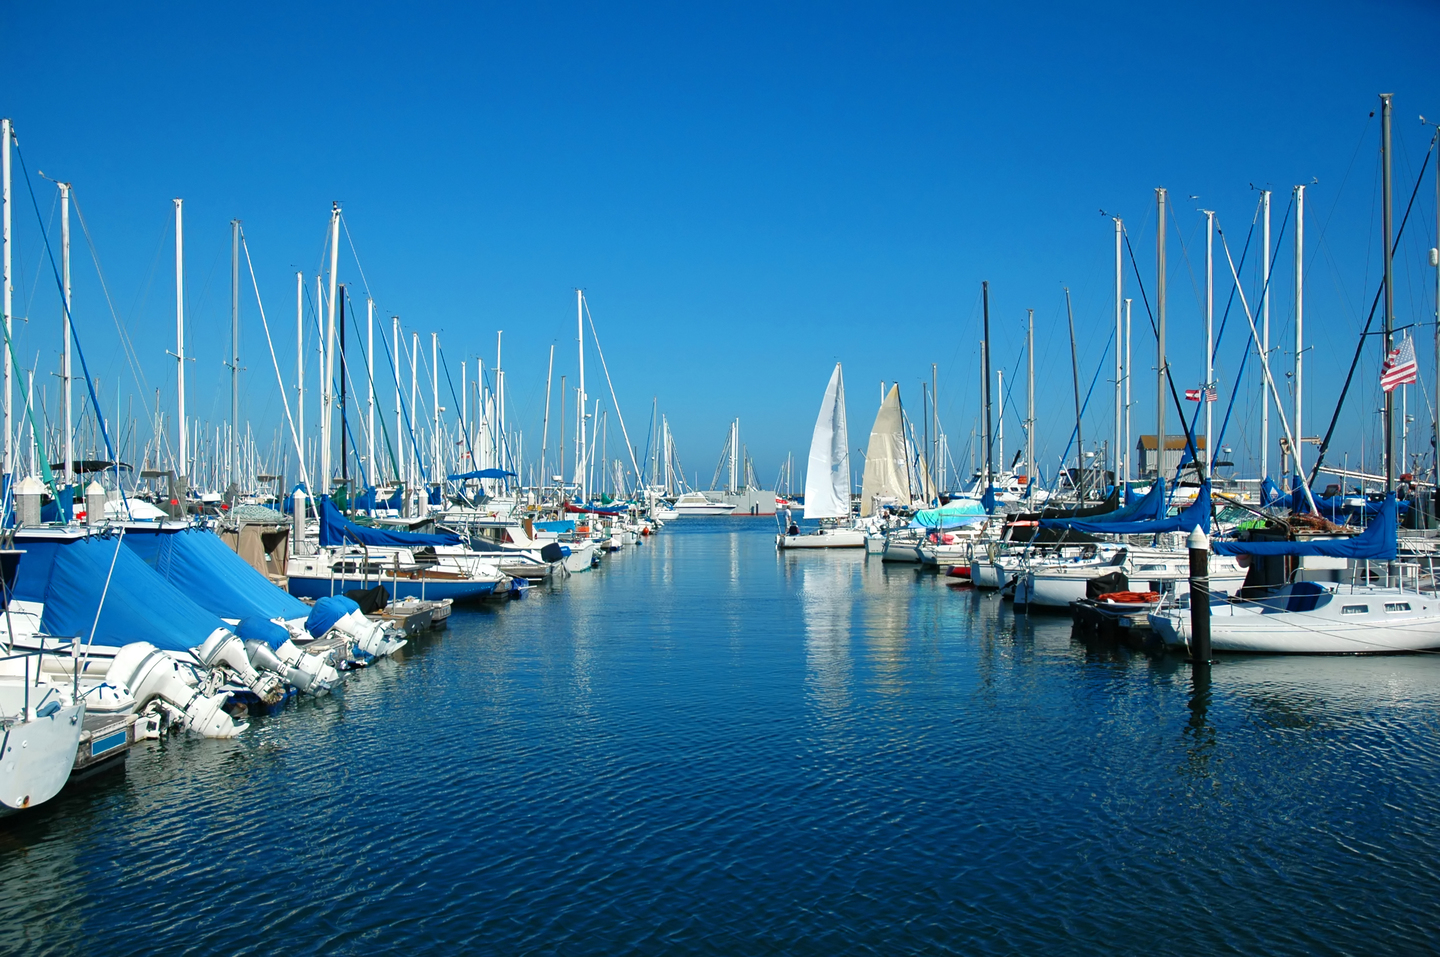 Boats and yachts in a marina